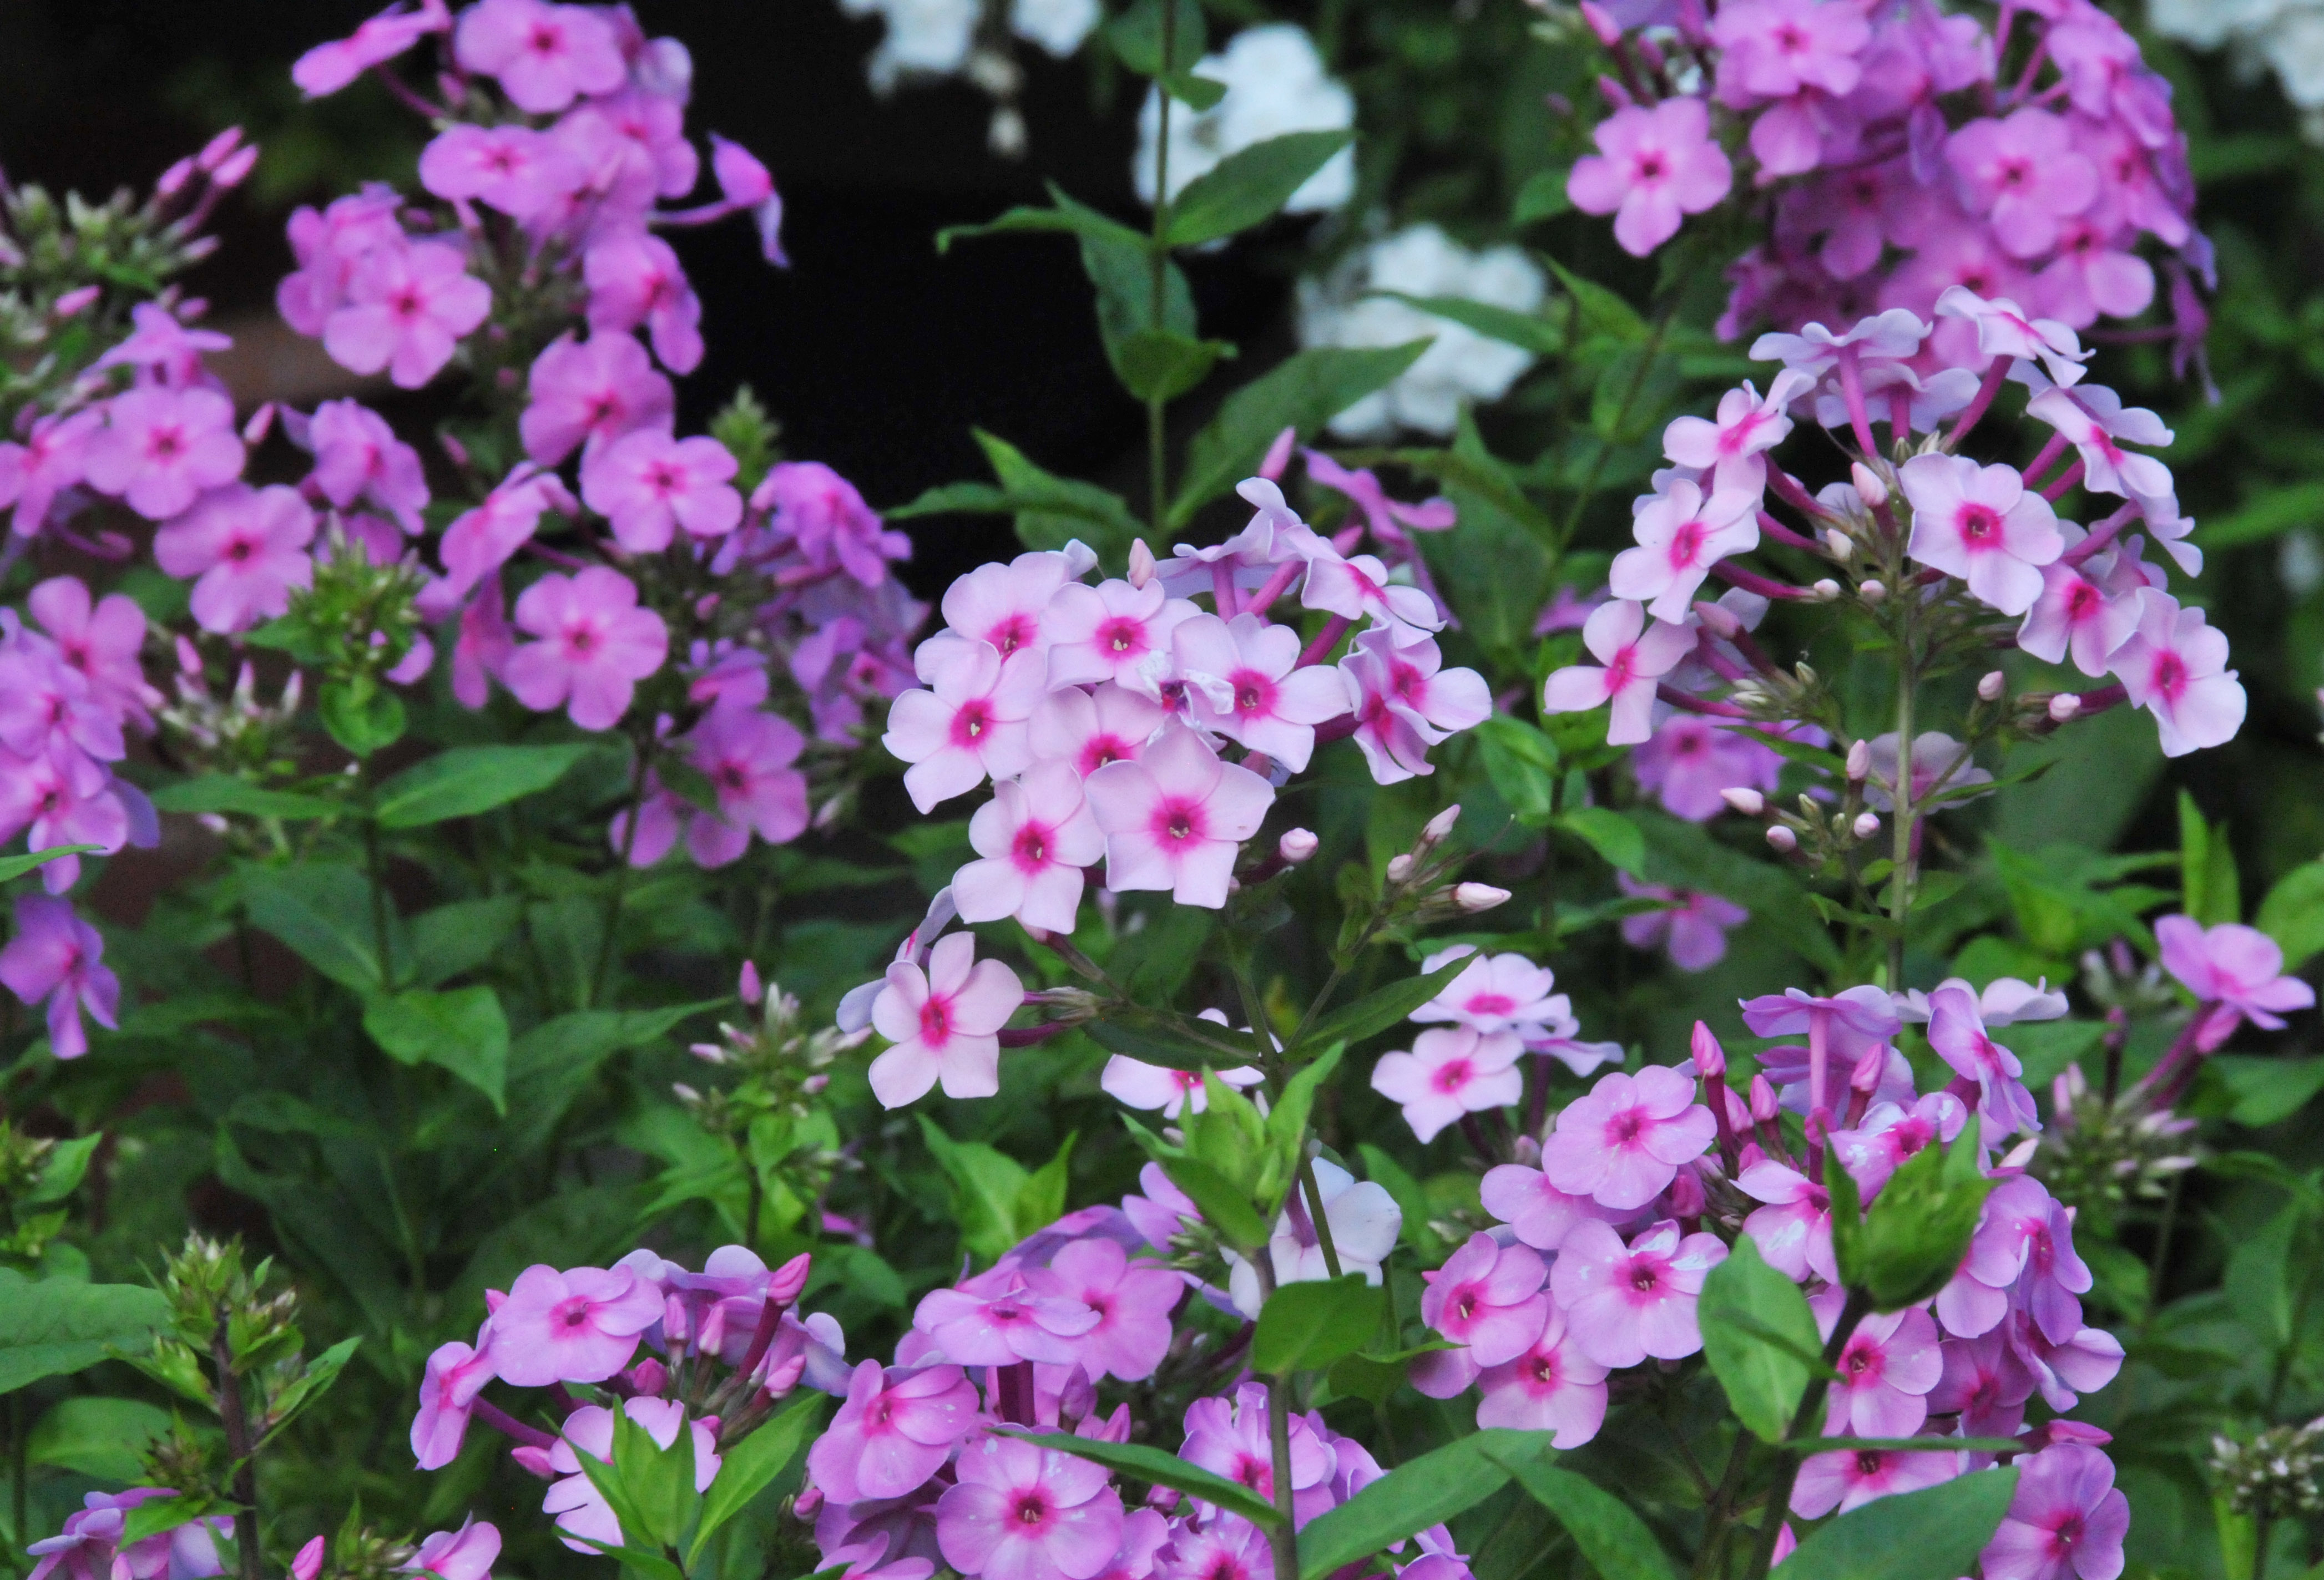 popstars the week plant tall mr michael geek perry of img garden phlox